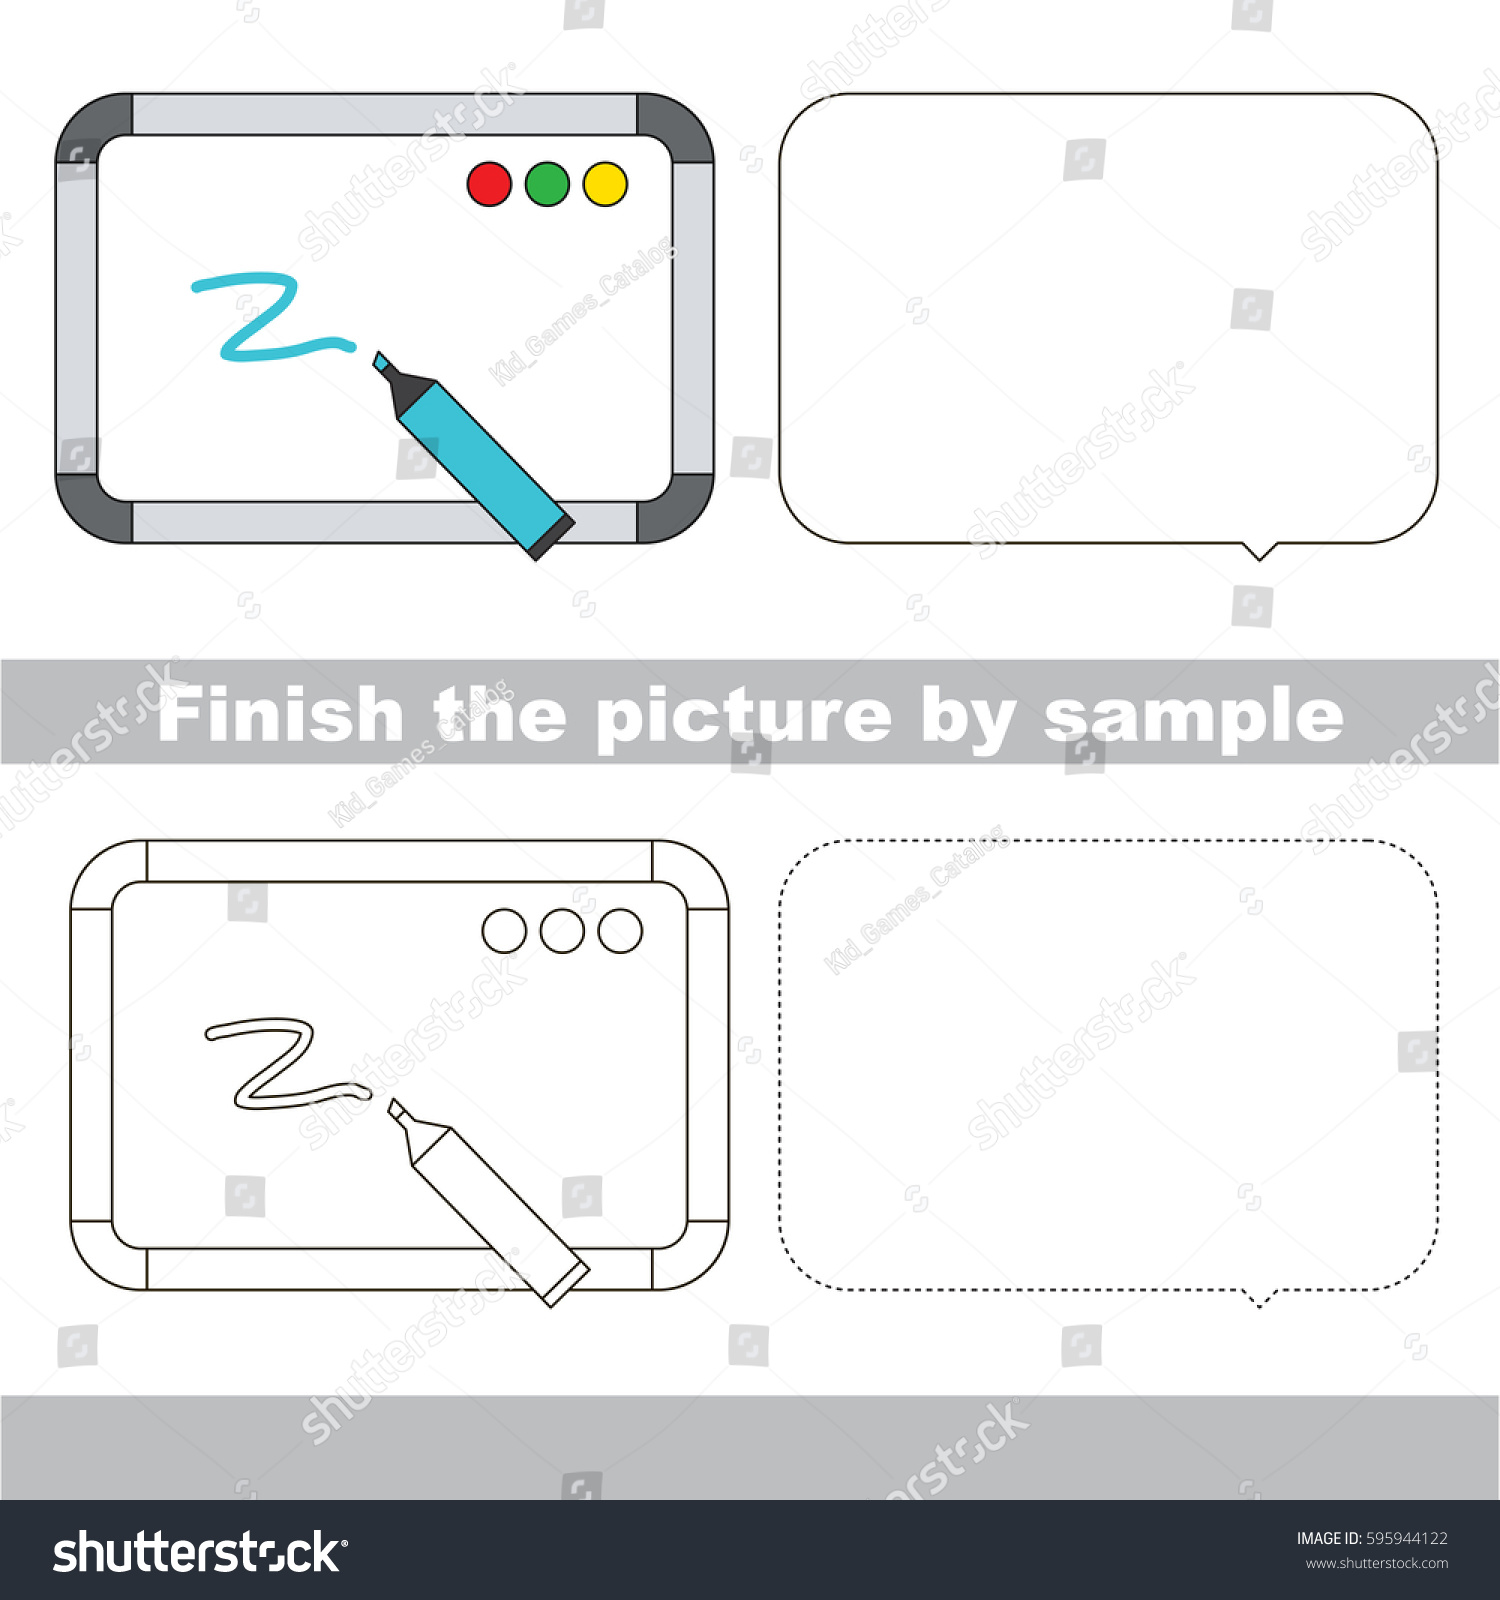 drawing worksheet preschool kids easy gaming stock vector 595944122 shutterstock. Black Bedroom Furniture Sets. Home Design Ideas